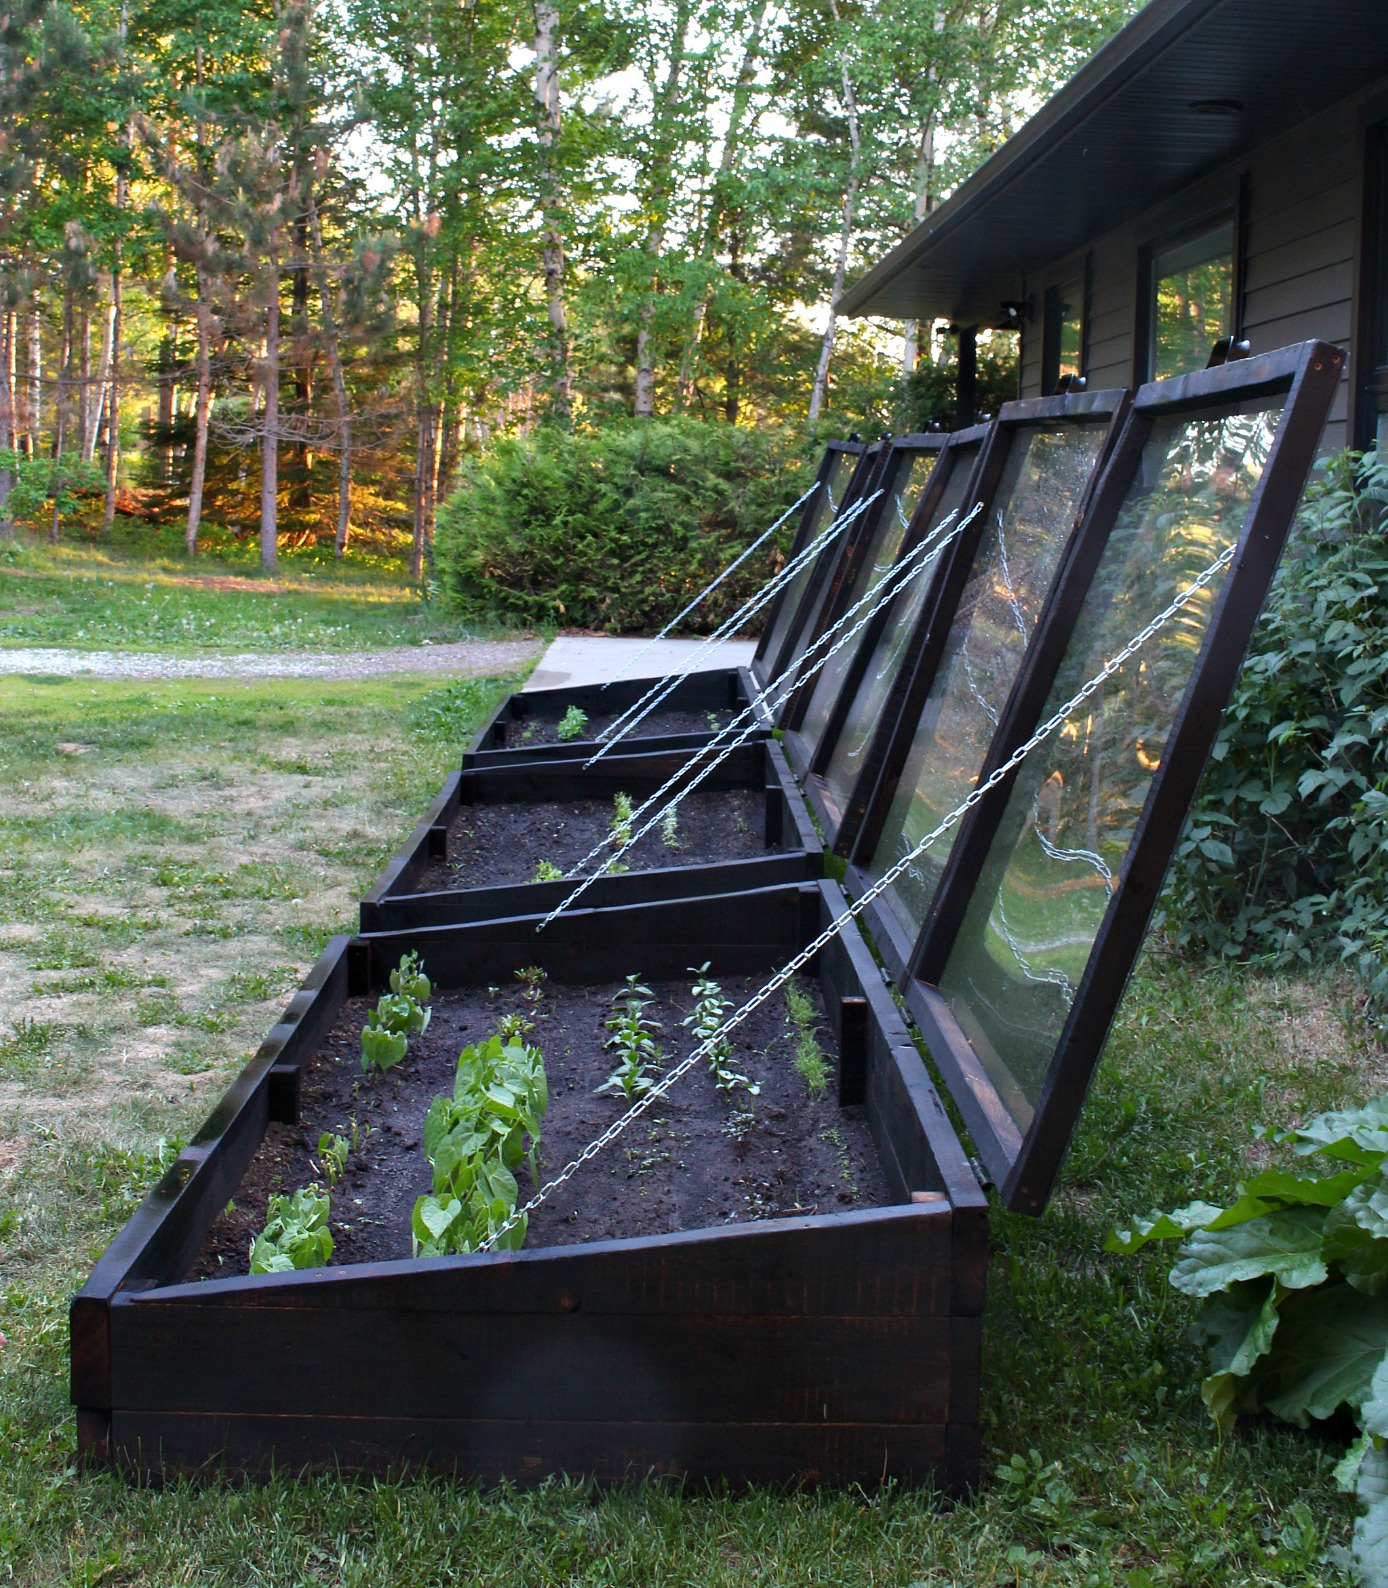 How to Build a Garden Bed with a Lid